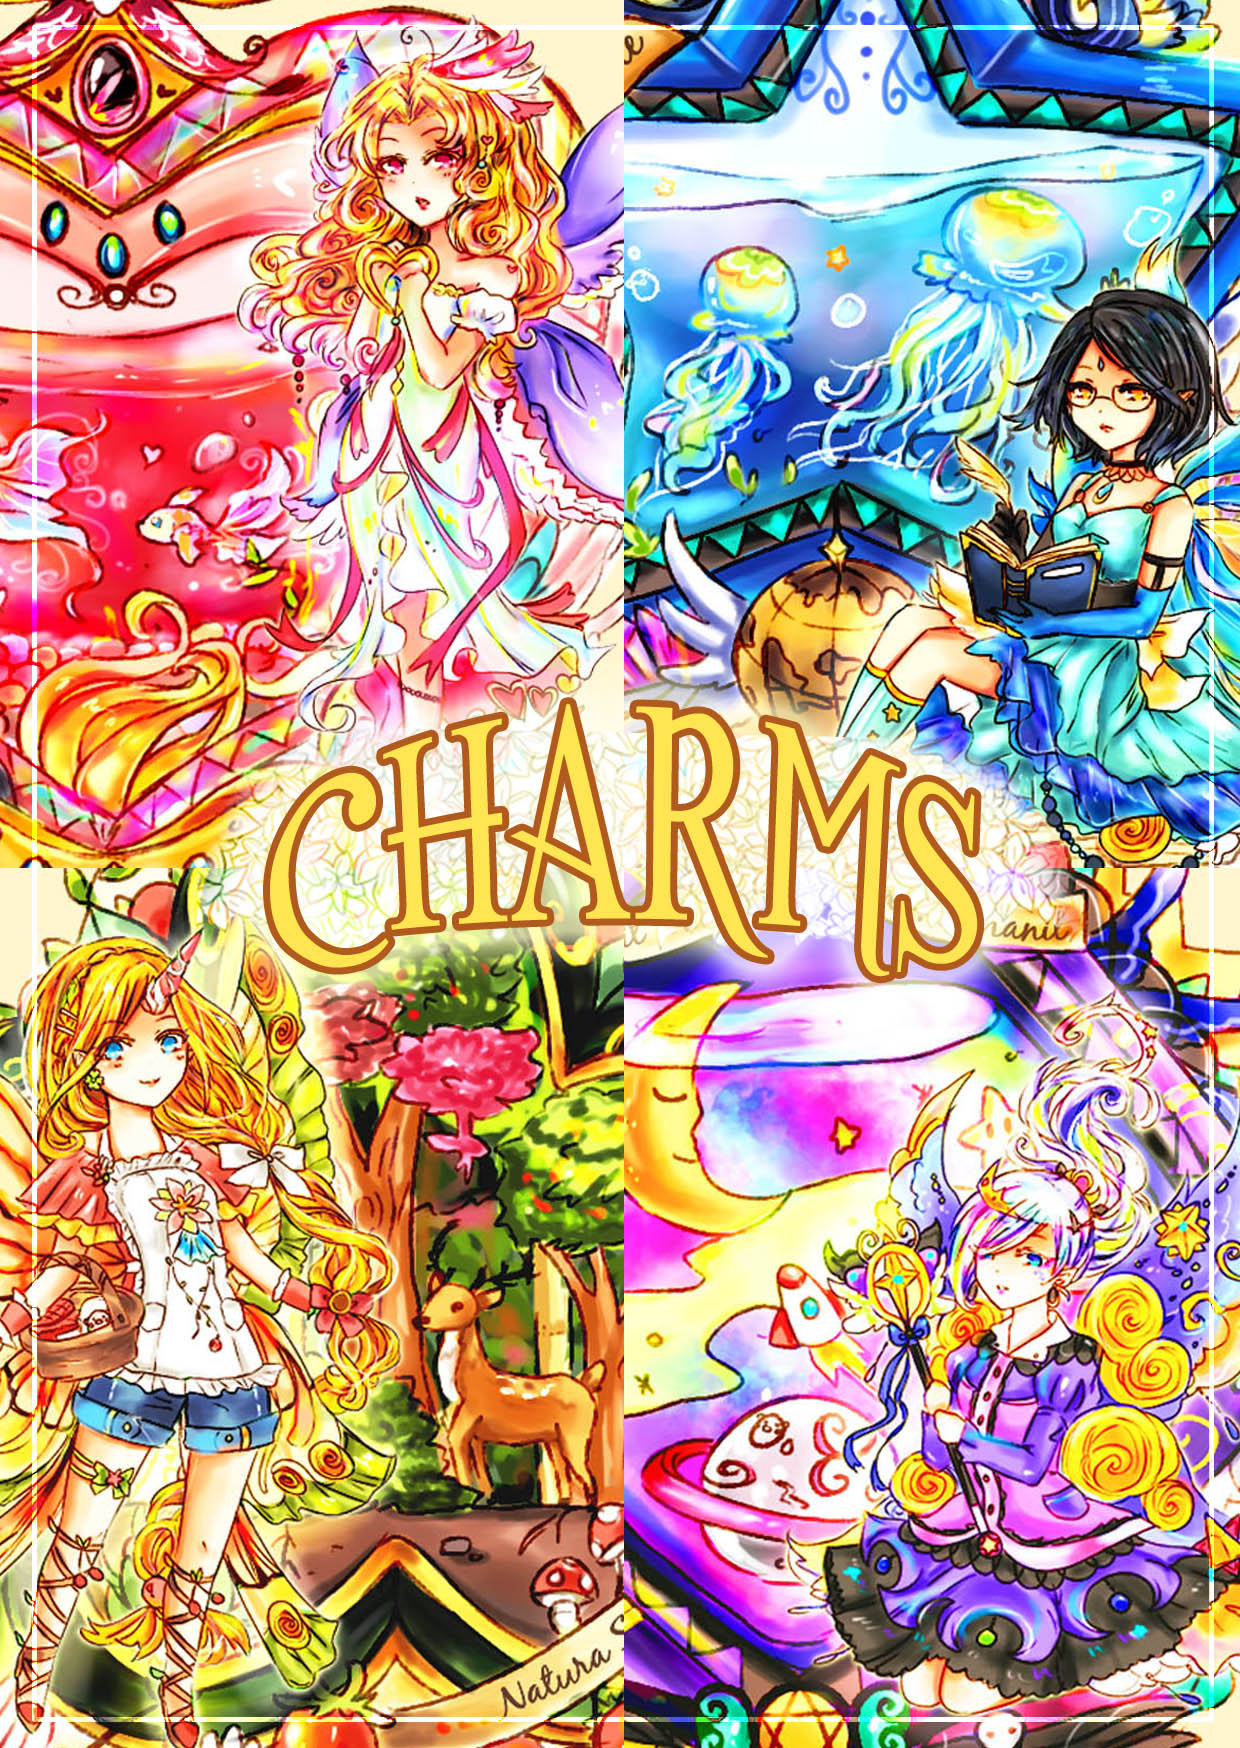 Fairy Charms Series